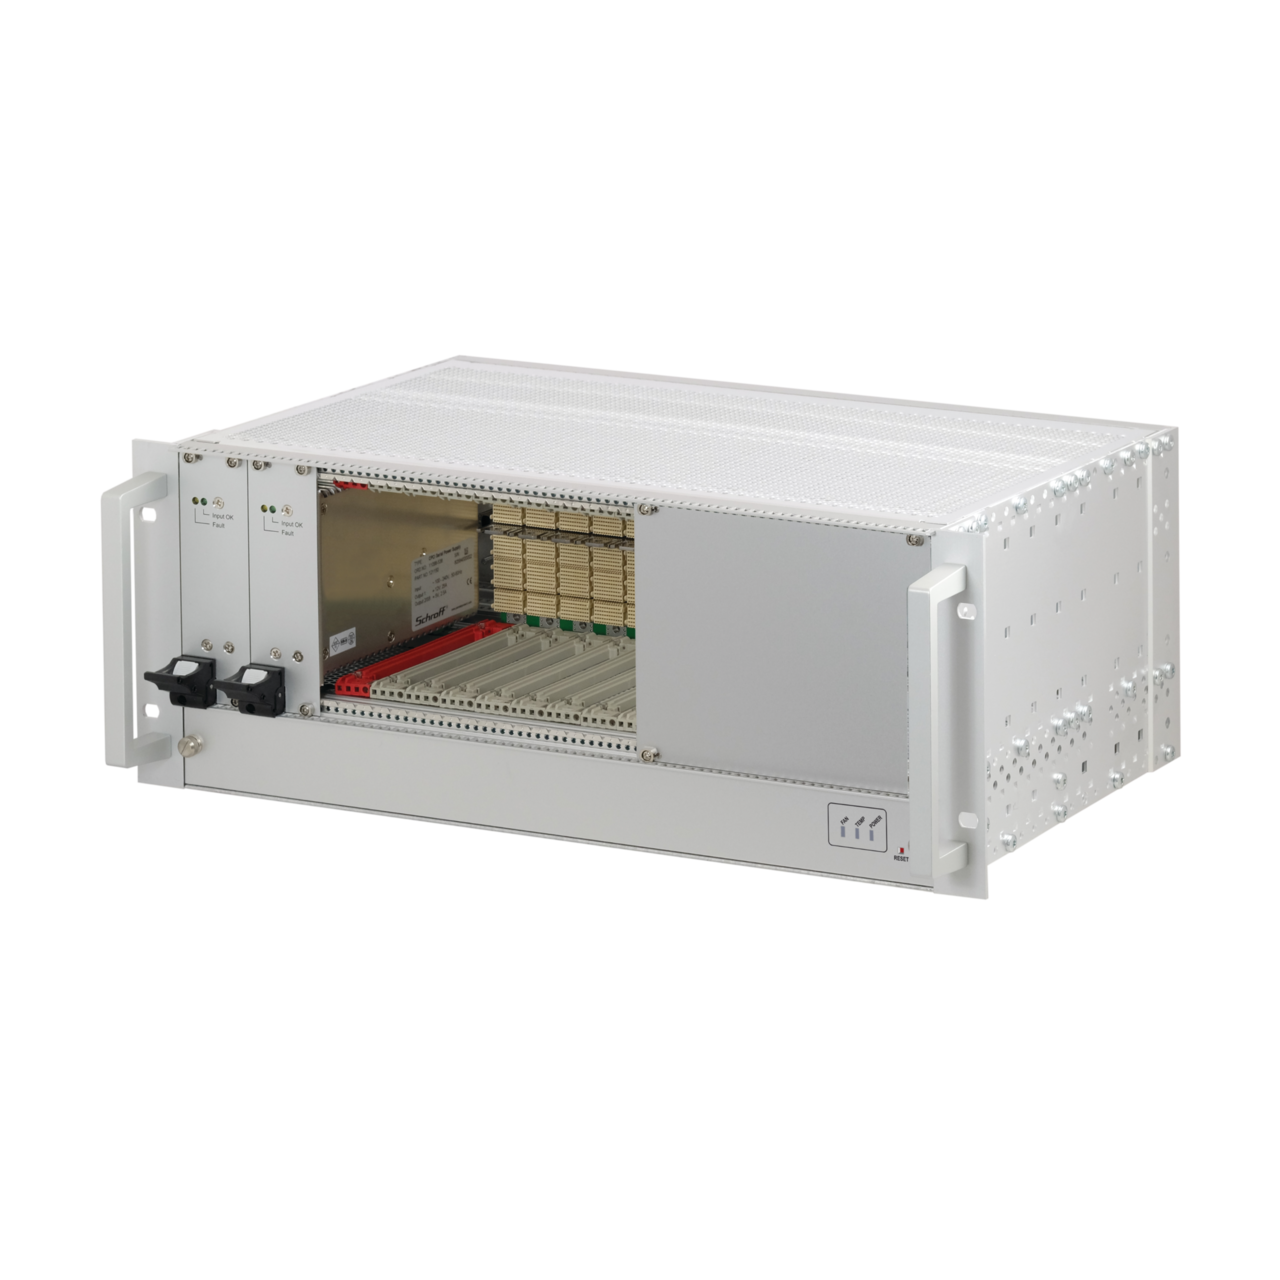 Image for CompactPCI Serial, 4 U, with/without rear I/O, with 19